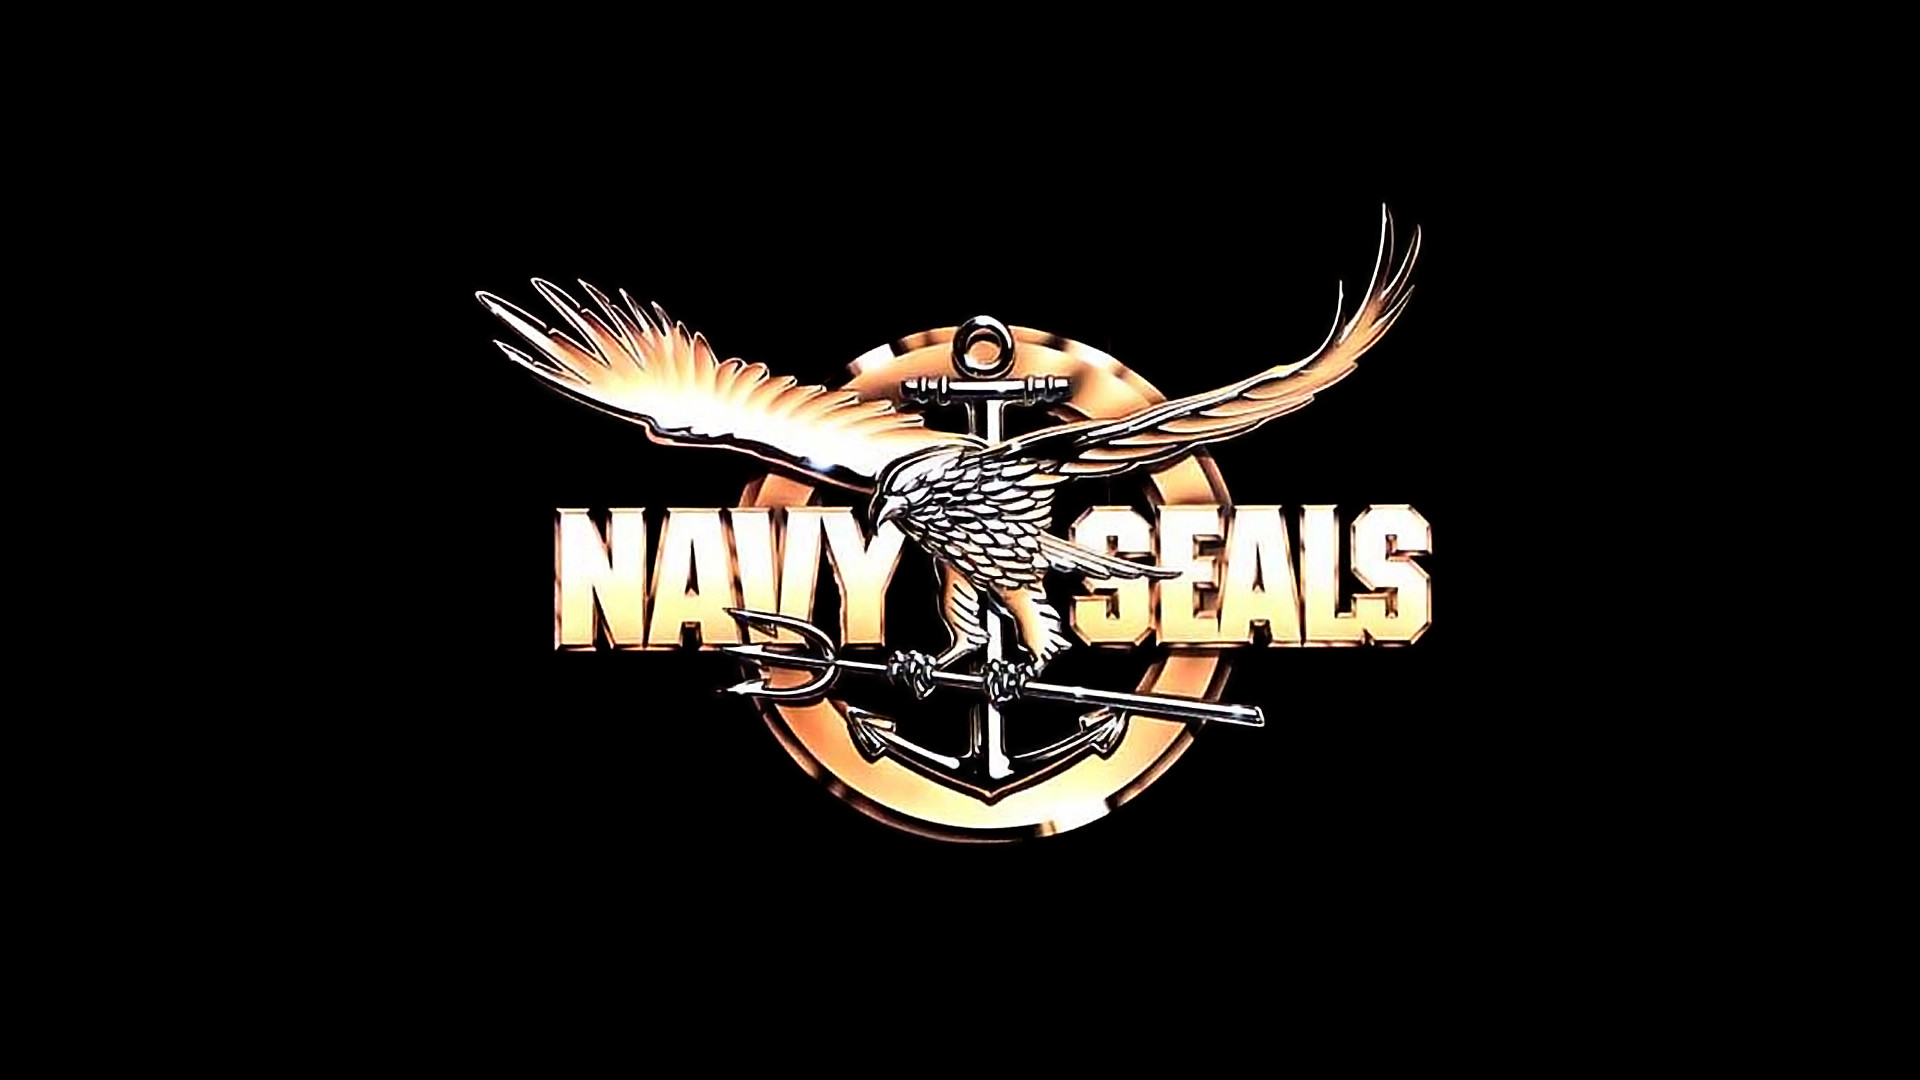 us navy seal logo wallpaper 56 images